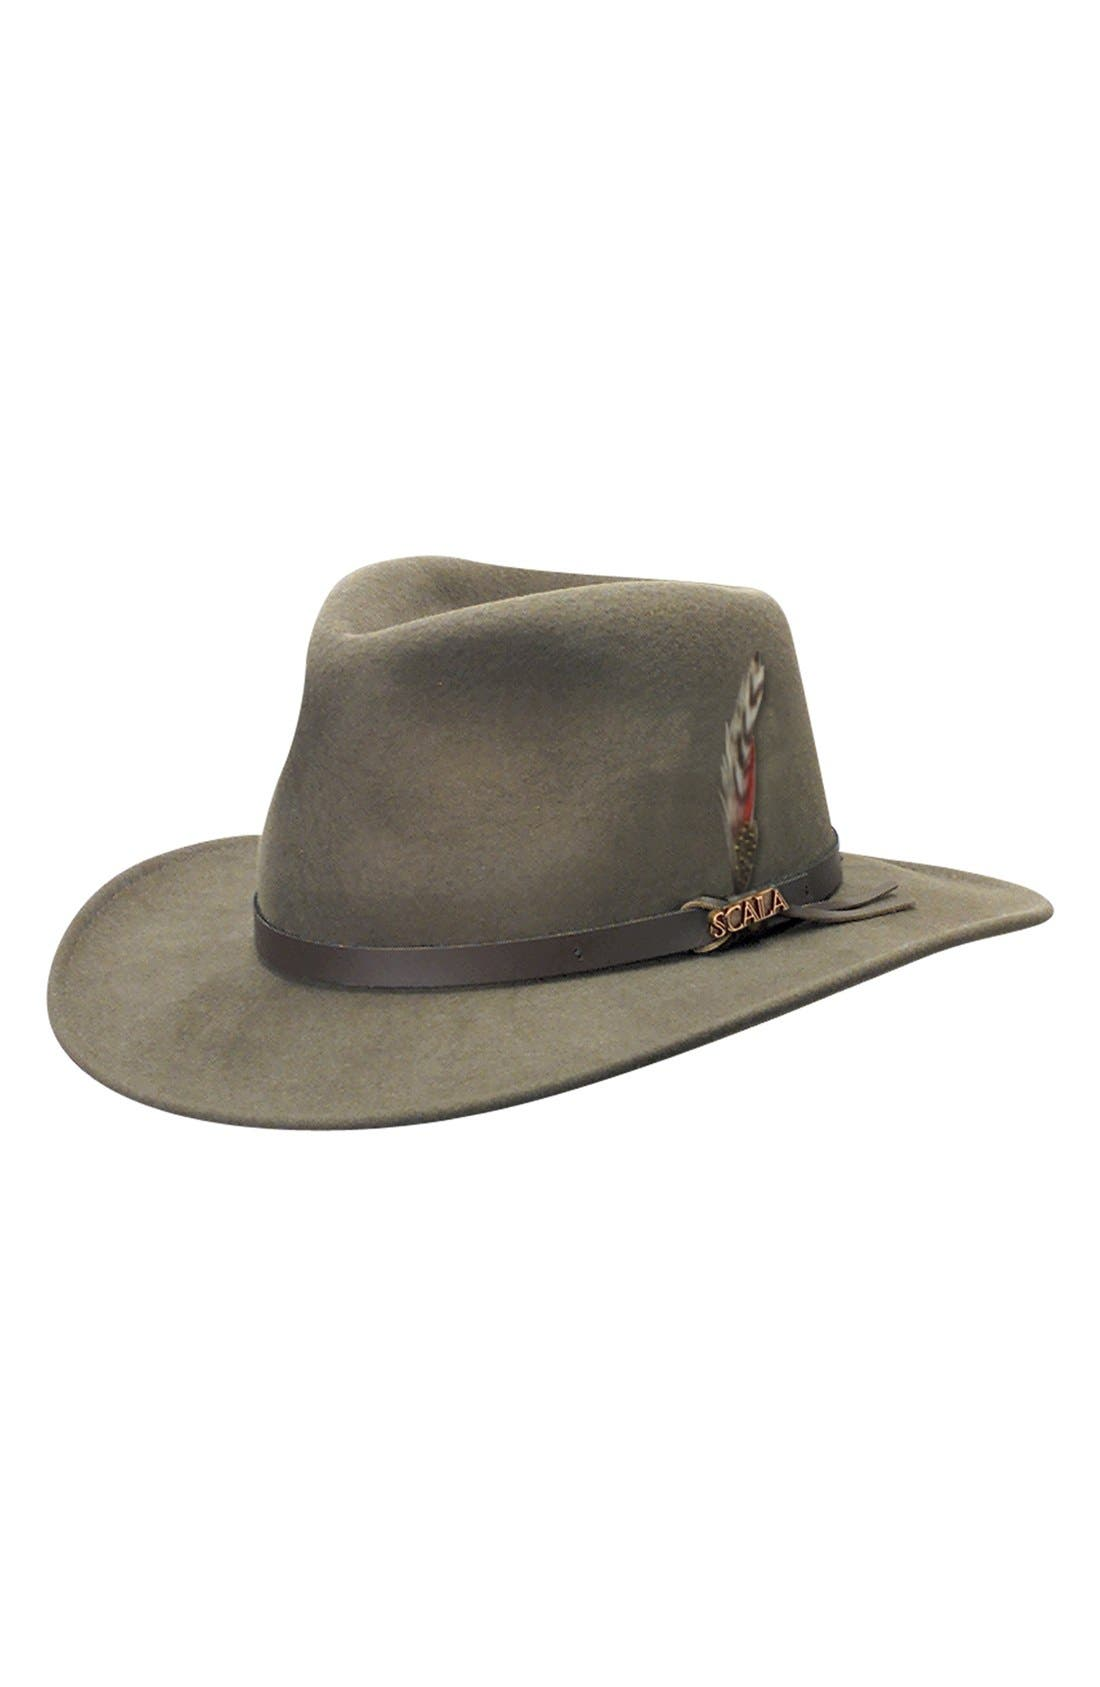 SCALA Classico Crushable Felt Outback Hat